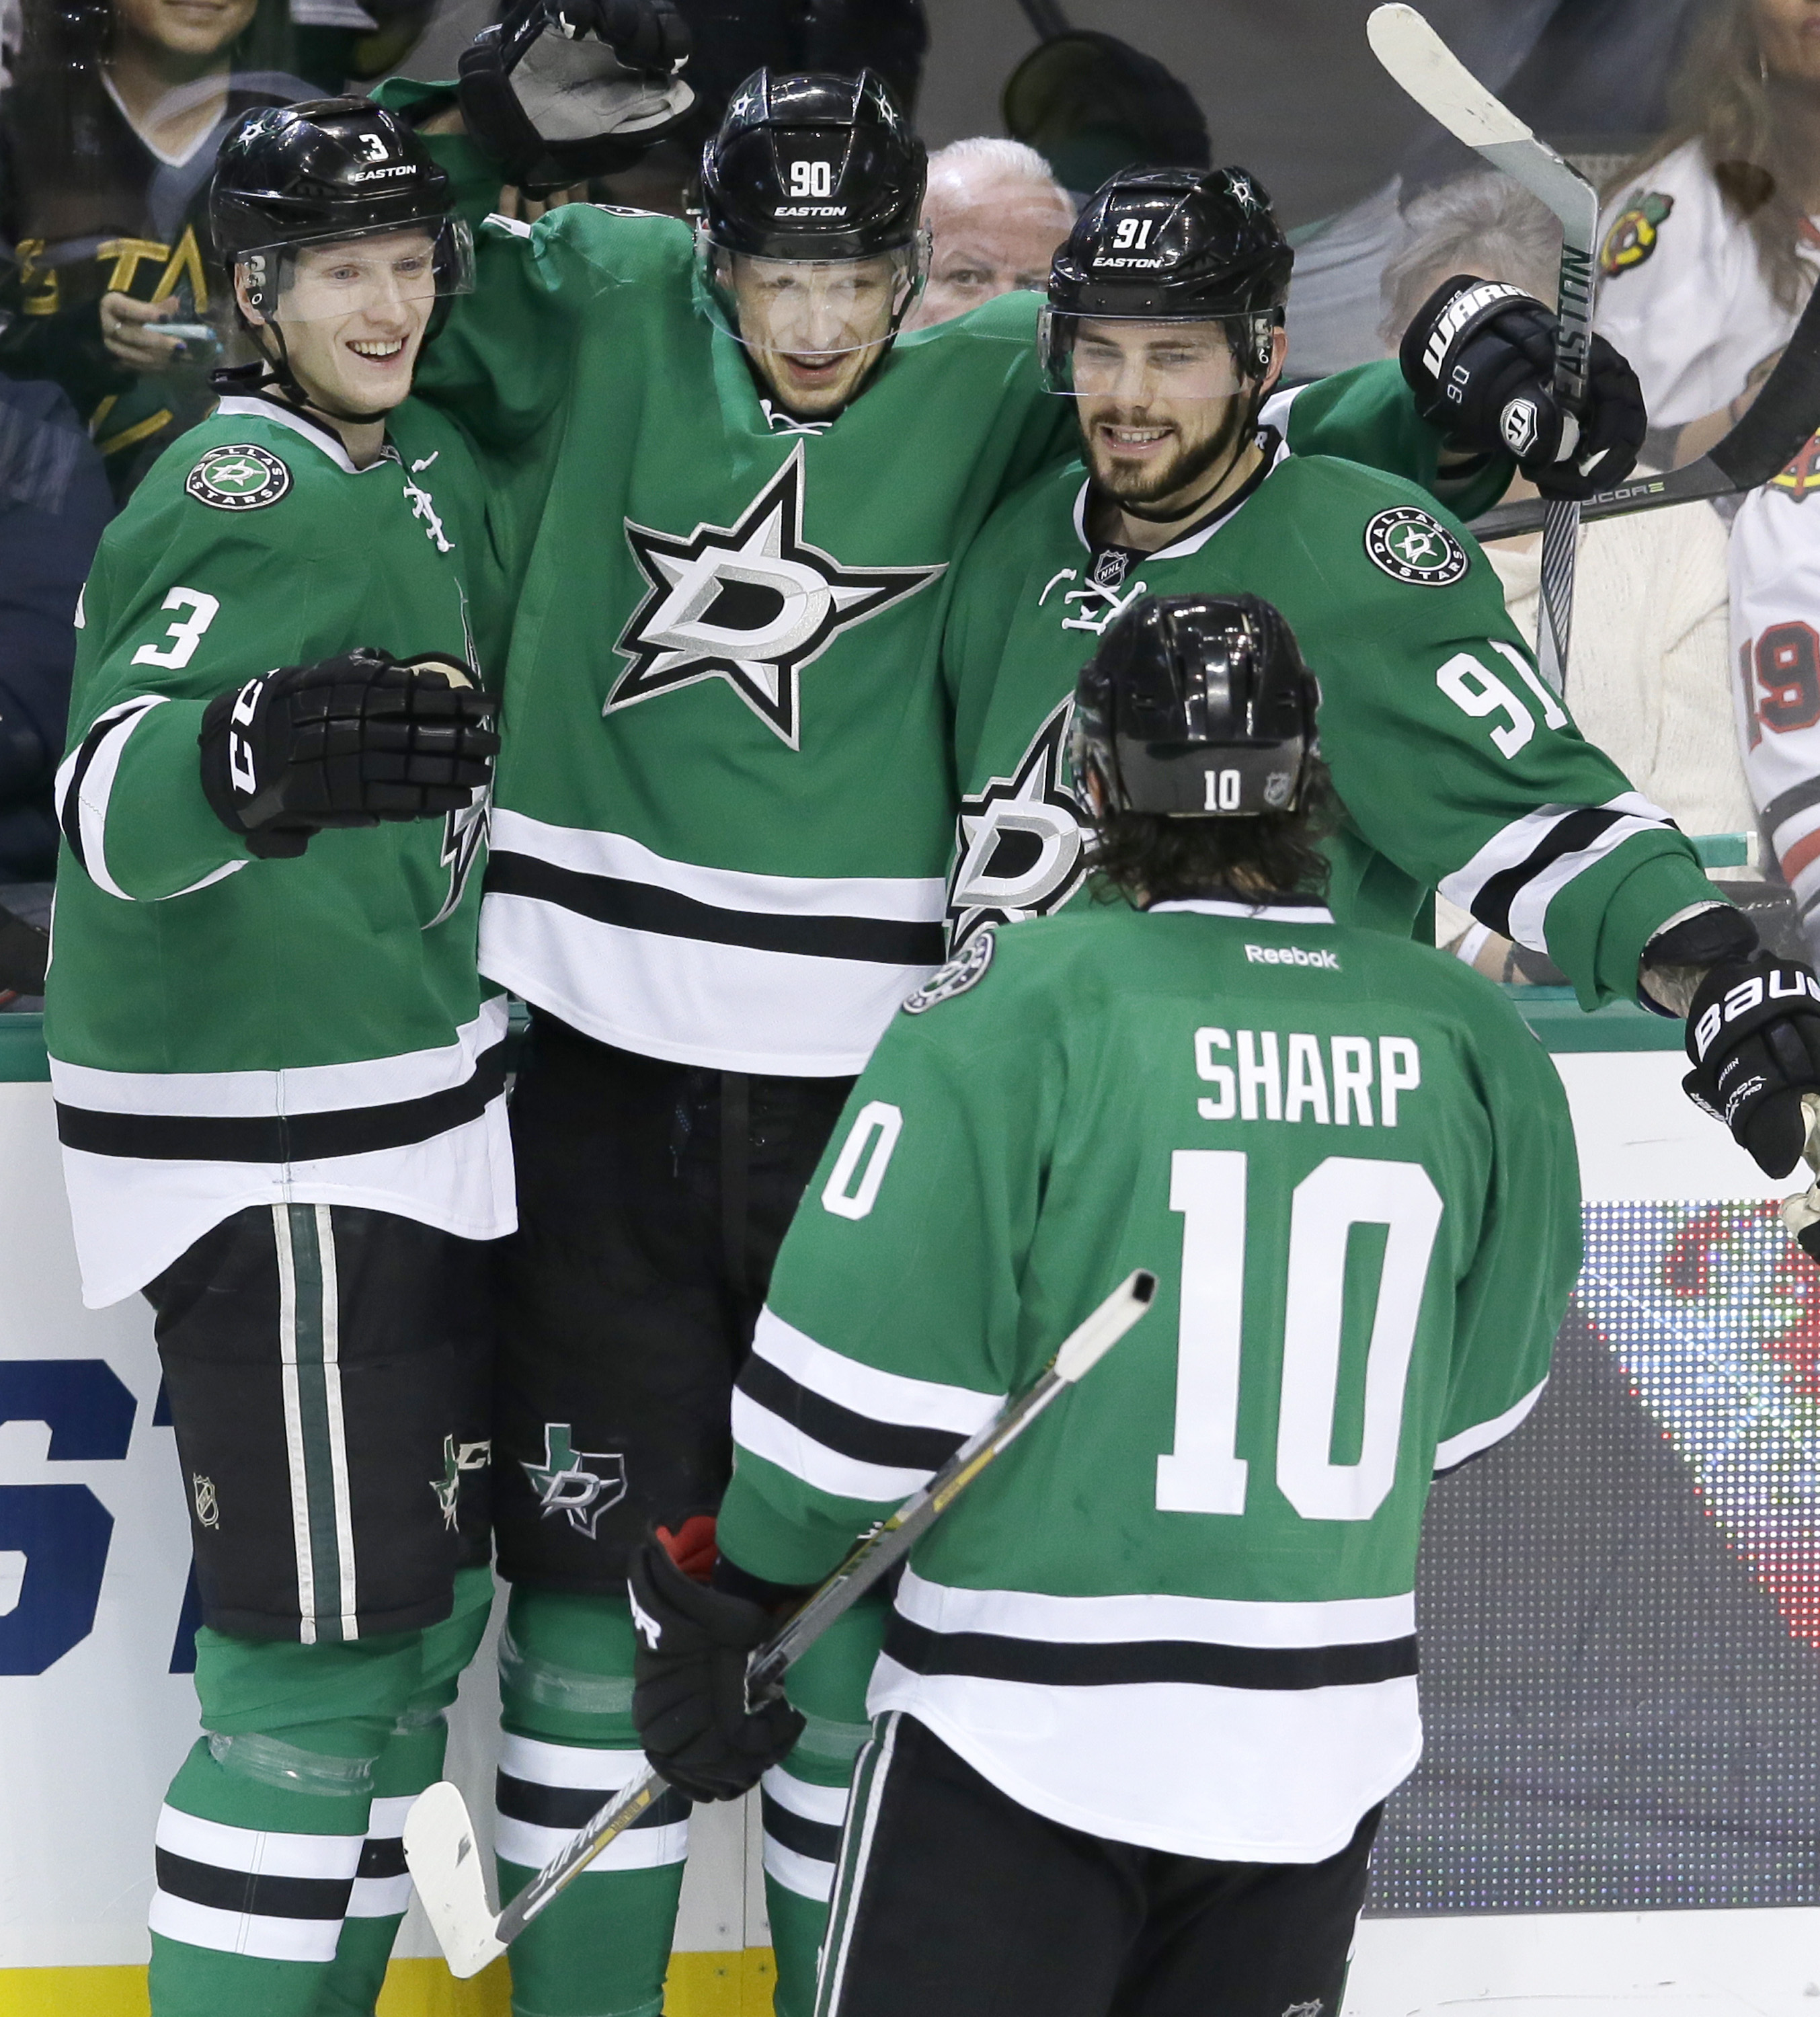 Dallas Stars center Jason Spezza (90) celebrates scoring a goal with teammates John Klingberg (3), Tyler Seguin (91) and Patrick Sharp (10) during the second period of an NHL hockey game against the Chicago Blackhawks on Tuesday, Dec. 22, 2015, in Dallas.